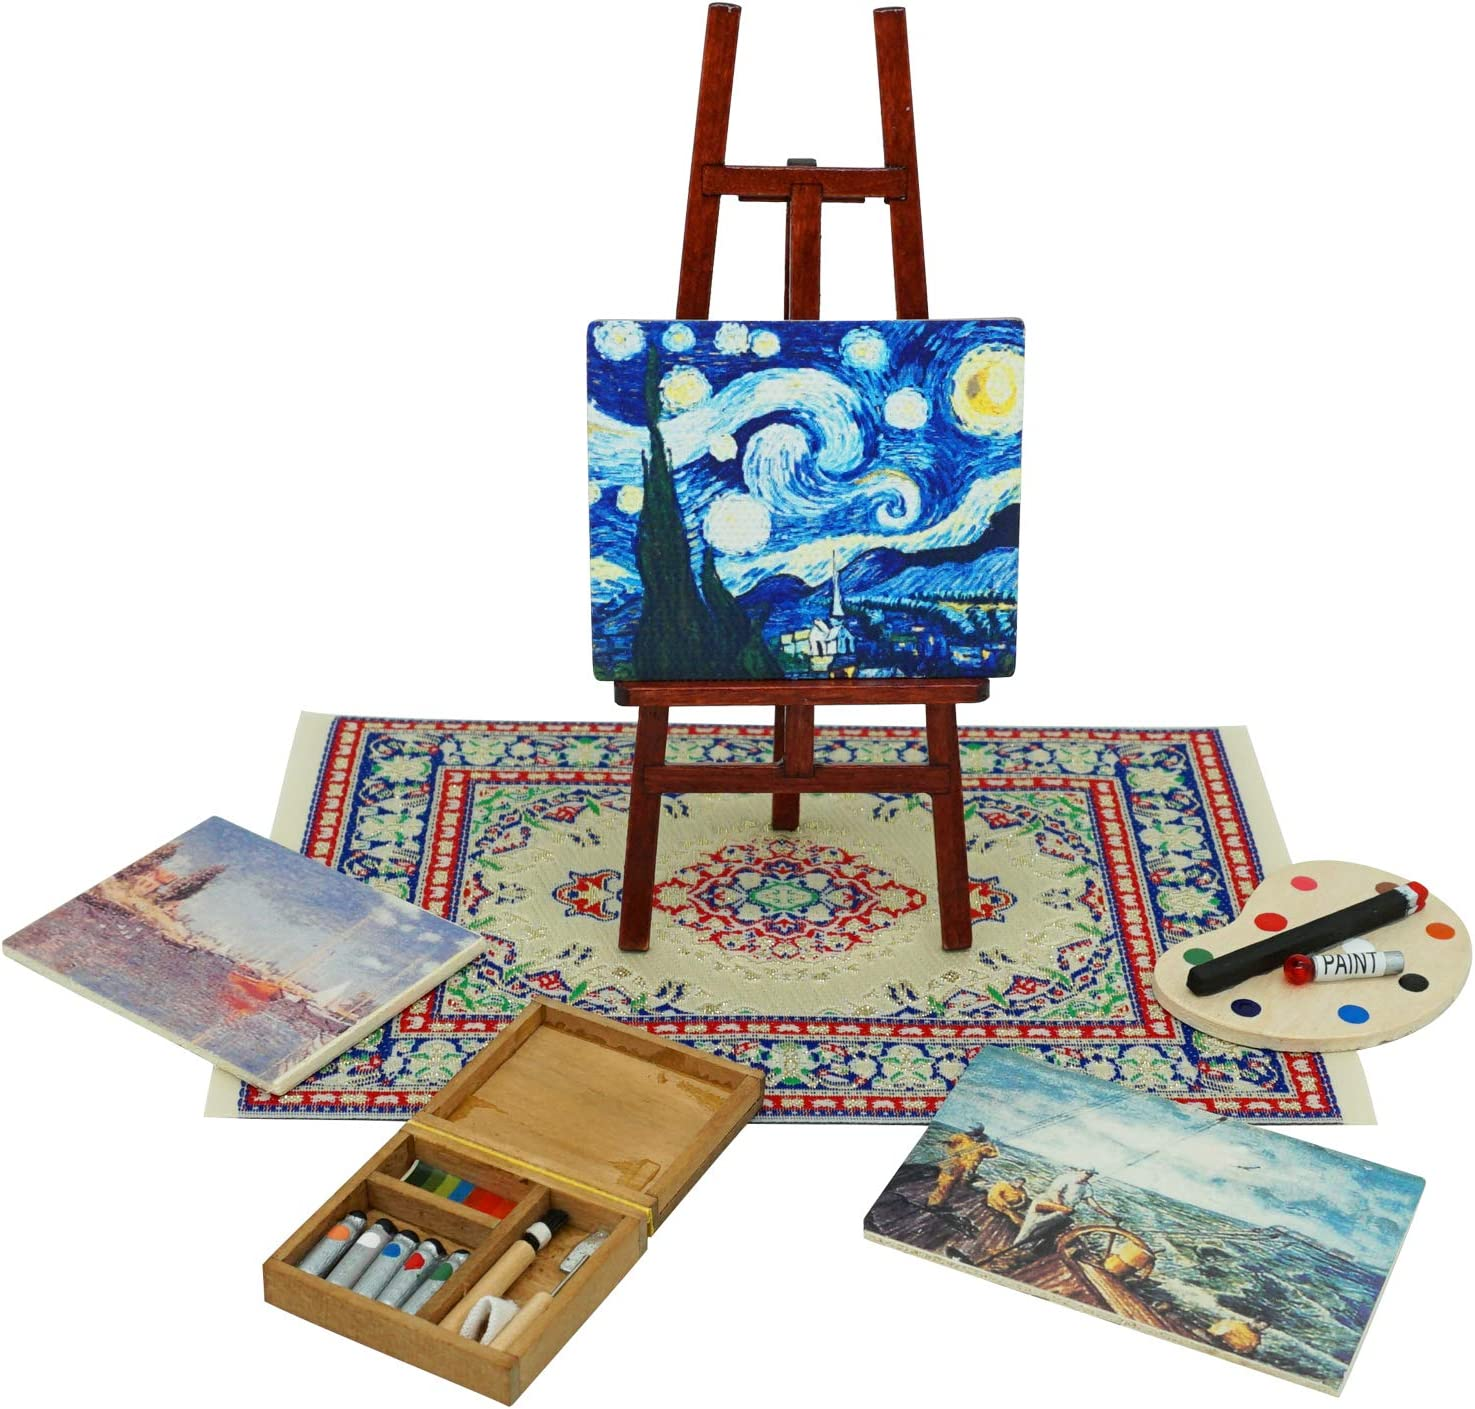 SAMCAMI Wooden Dollhouse Furniture and Accessories - Easel Oil Painting Set (7 PCS) for 1 12 Scale Miniature Dollhouse (Blown)